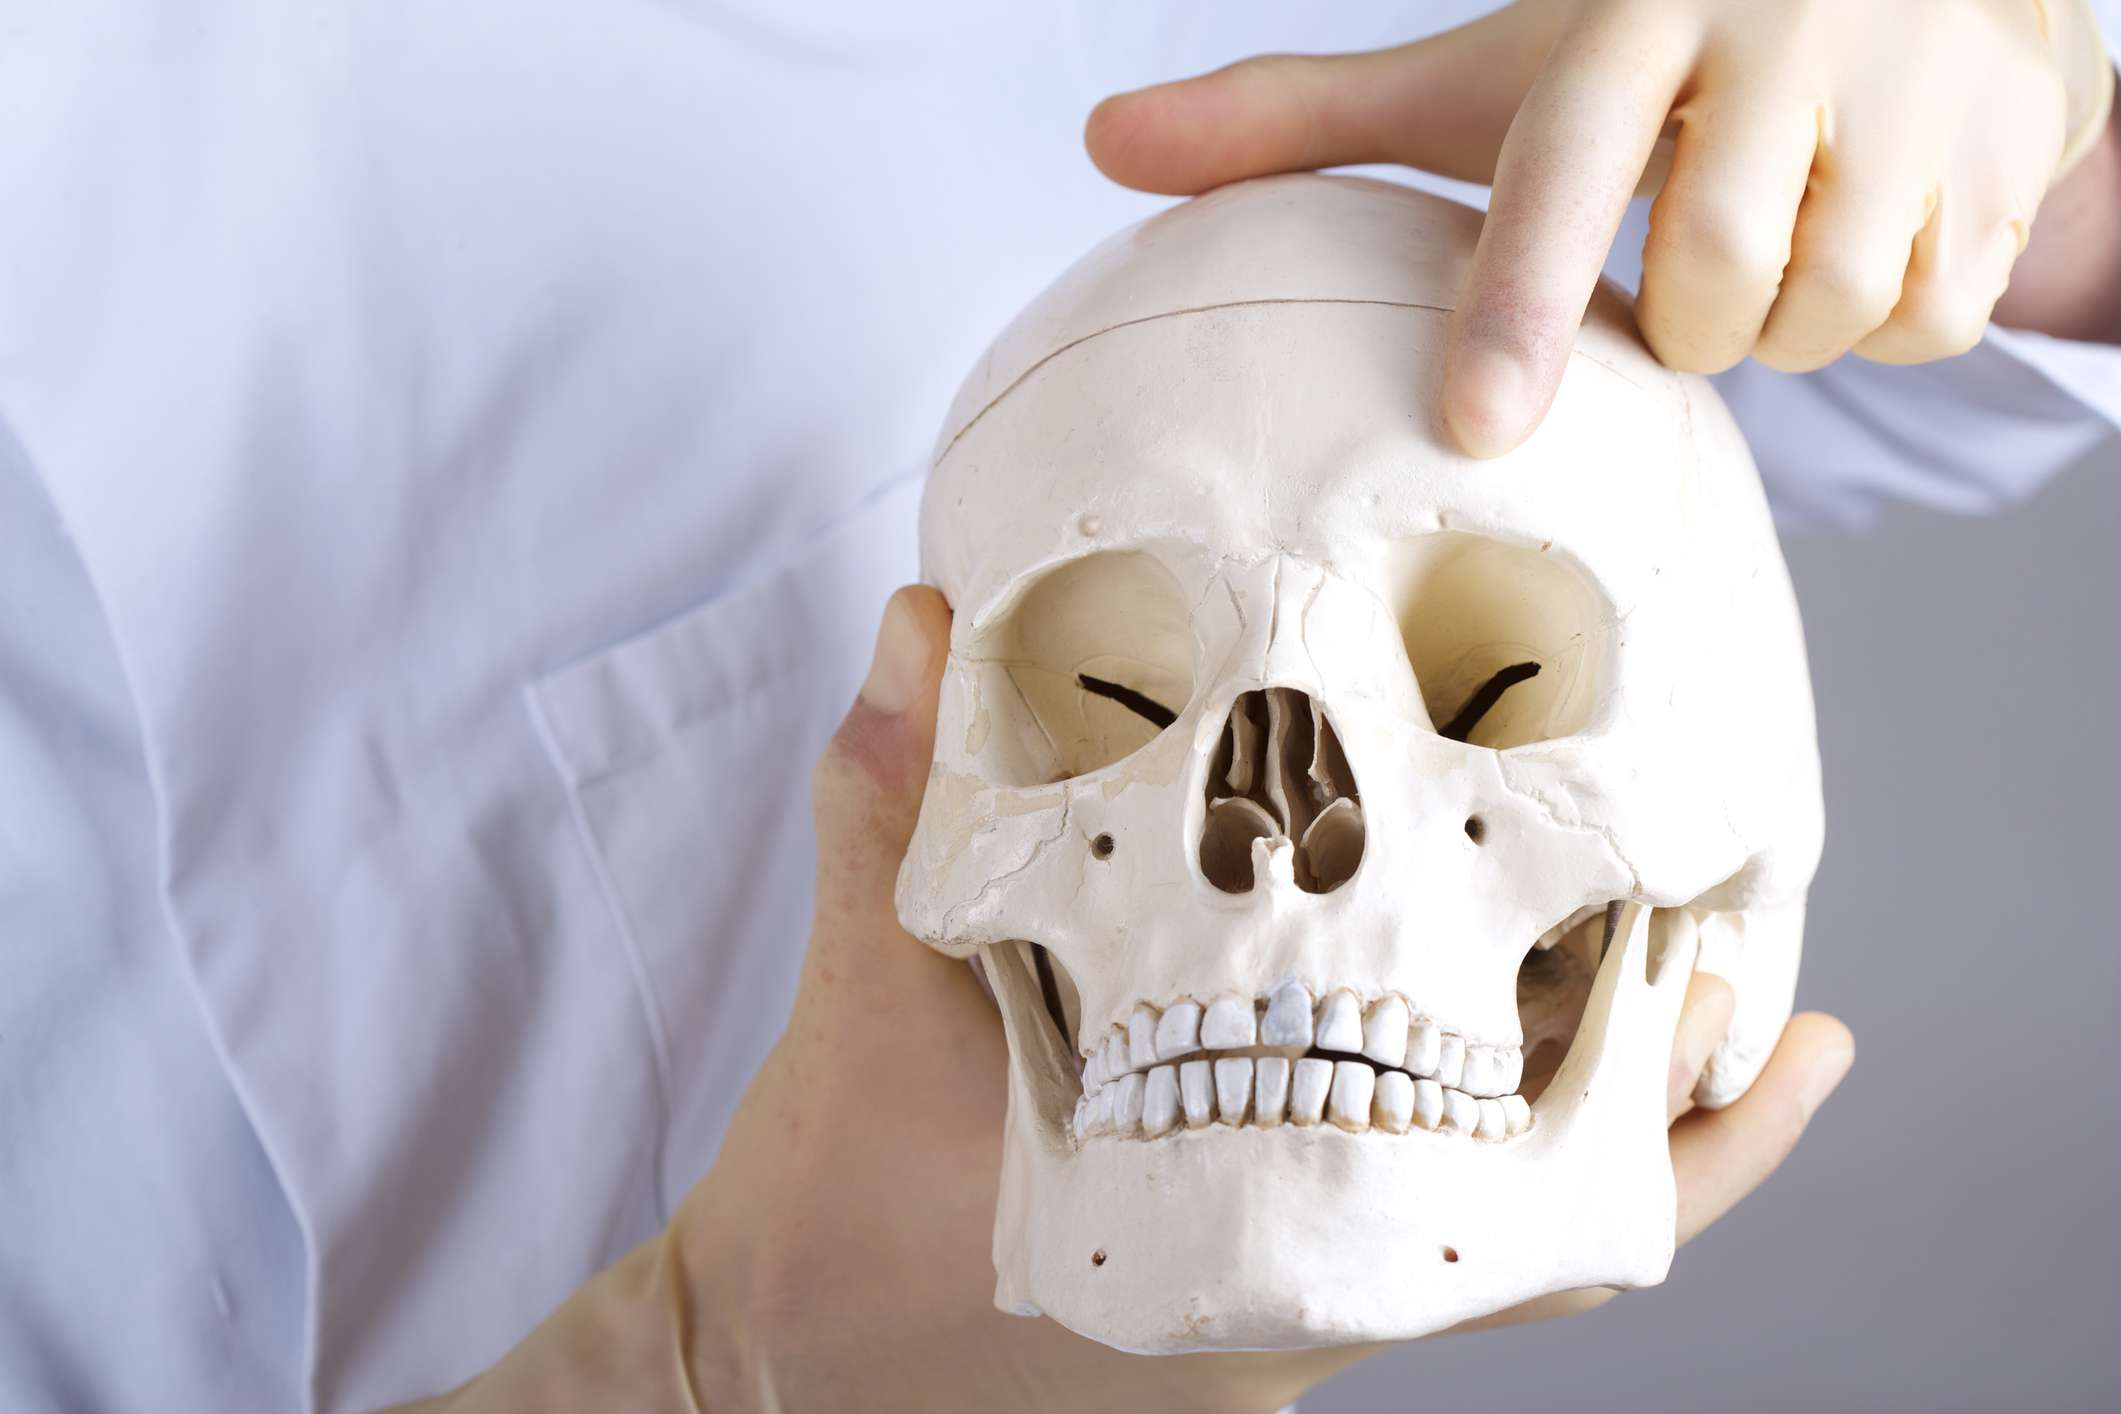 Pointing to supraorbital nerve on a model of a skull